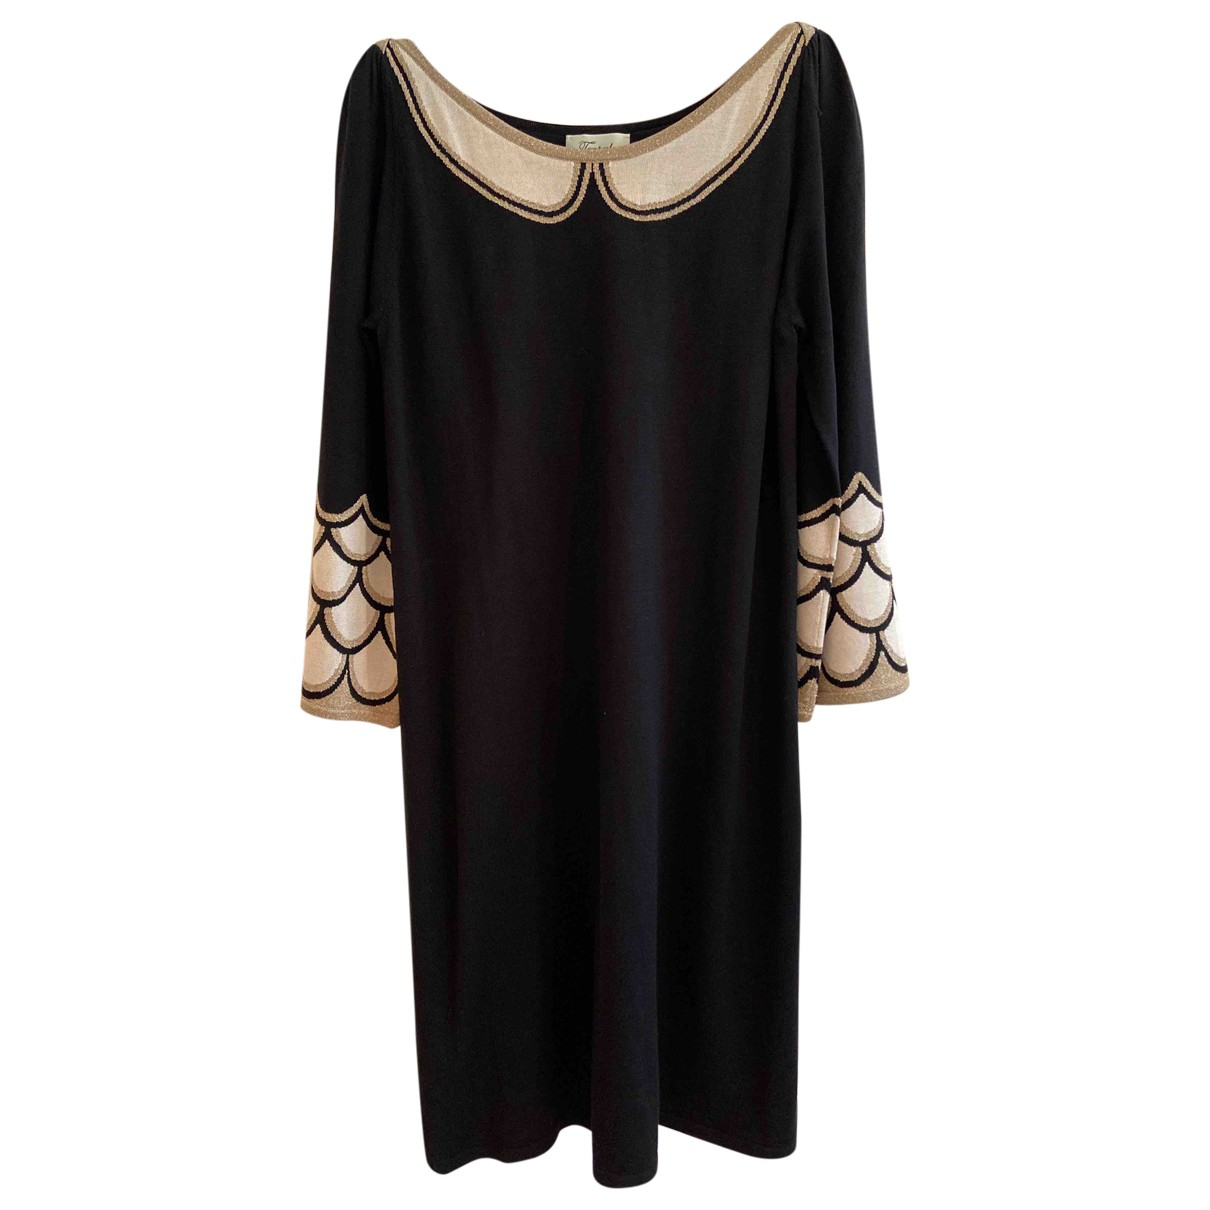 Temperley London \N Black Silk dress for Women 12 UK